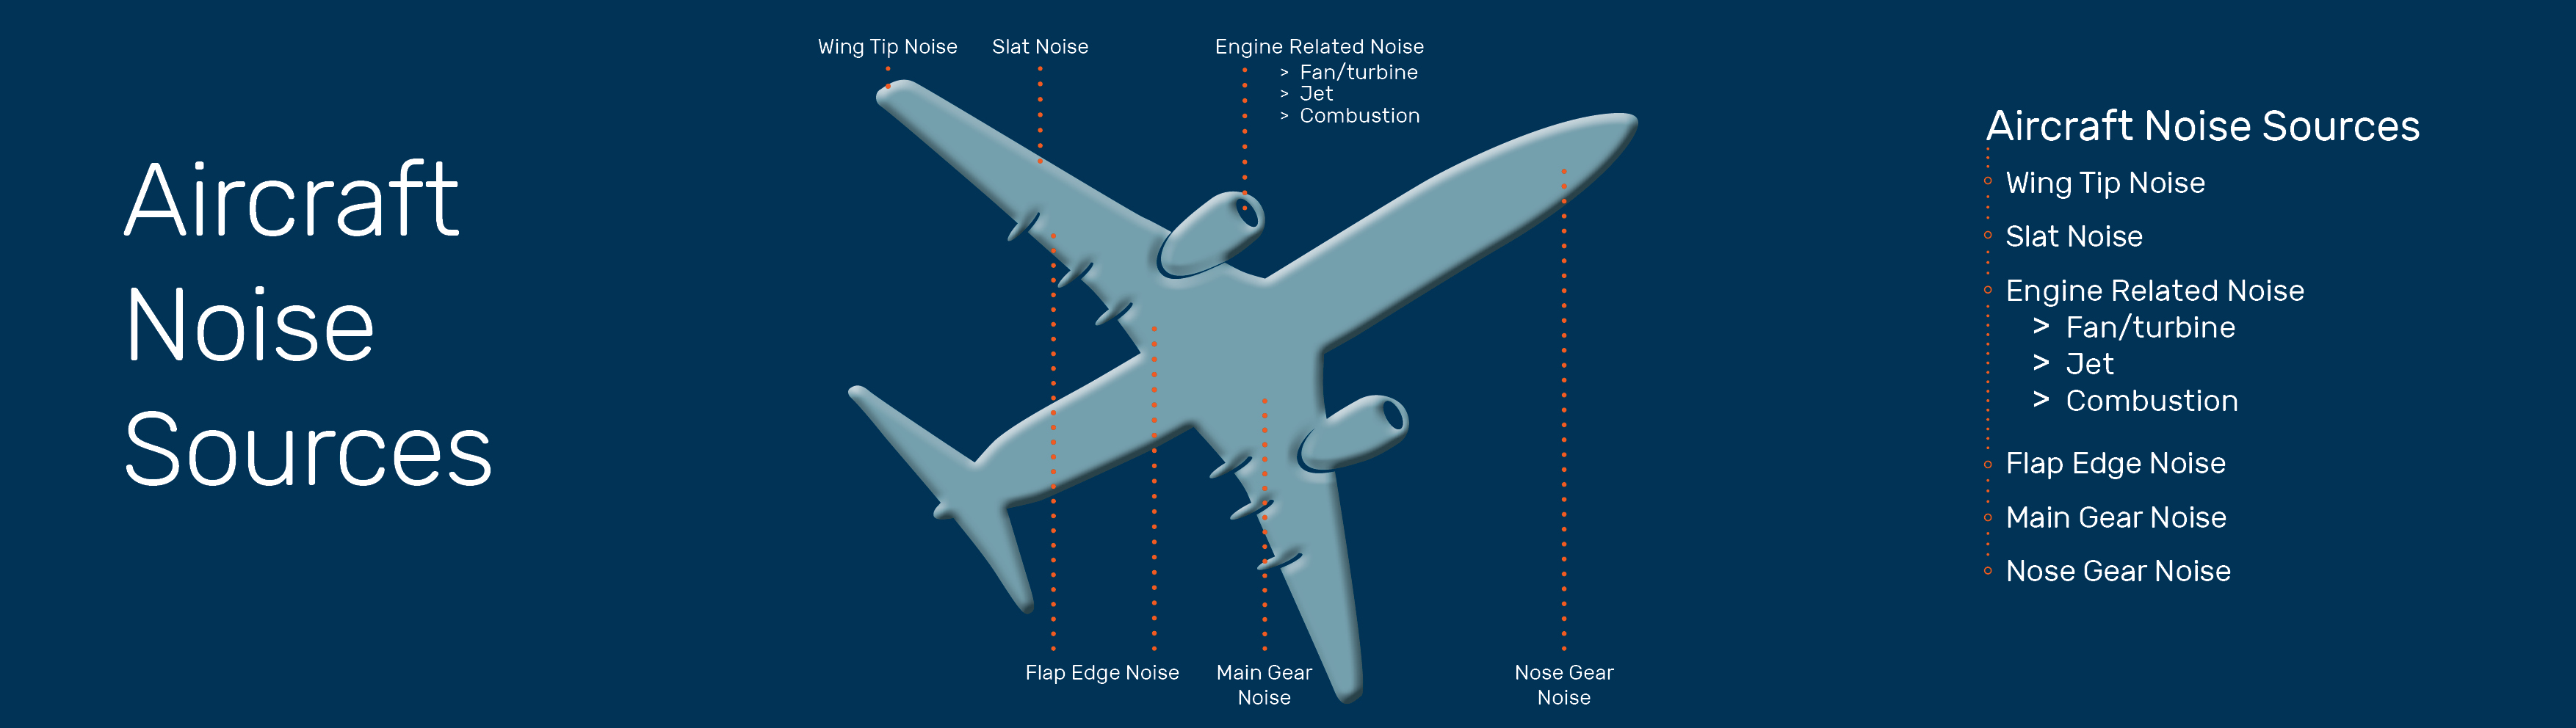 bred-aircraft-noise-sources-aero.jpg